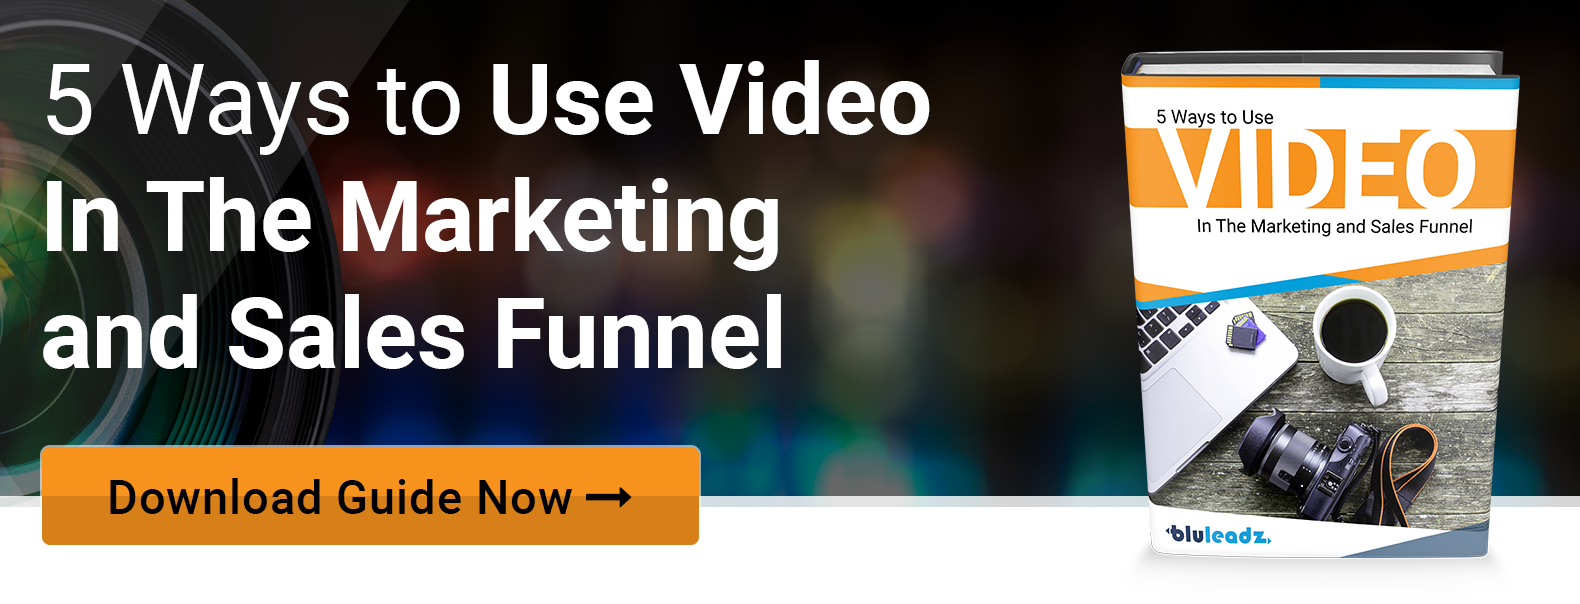 5 Ways To Use Video In Marketing And Sales